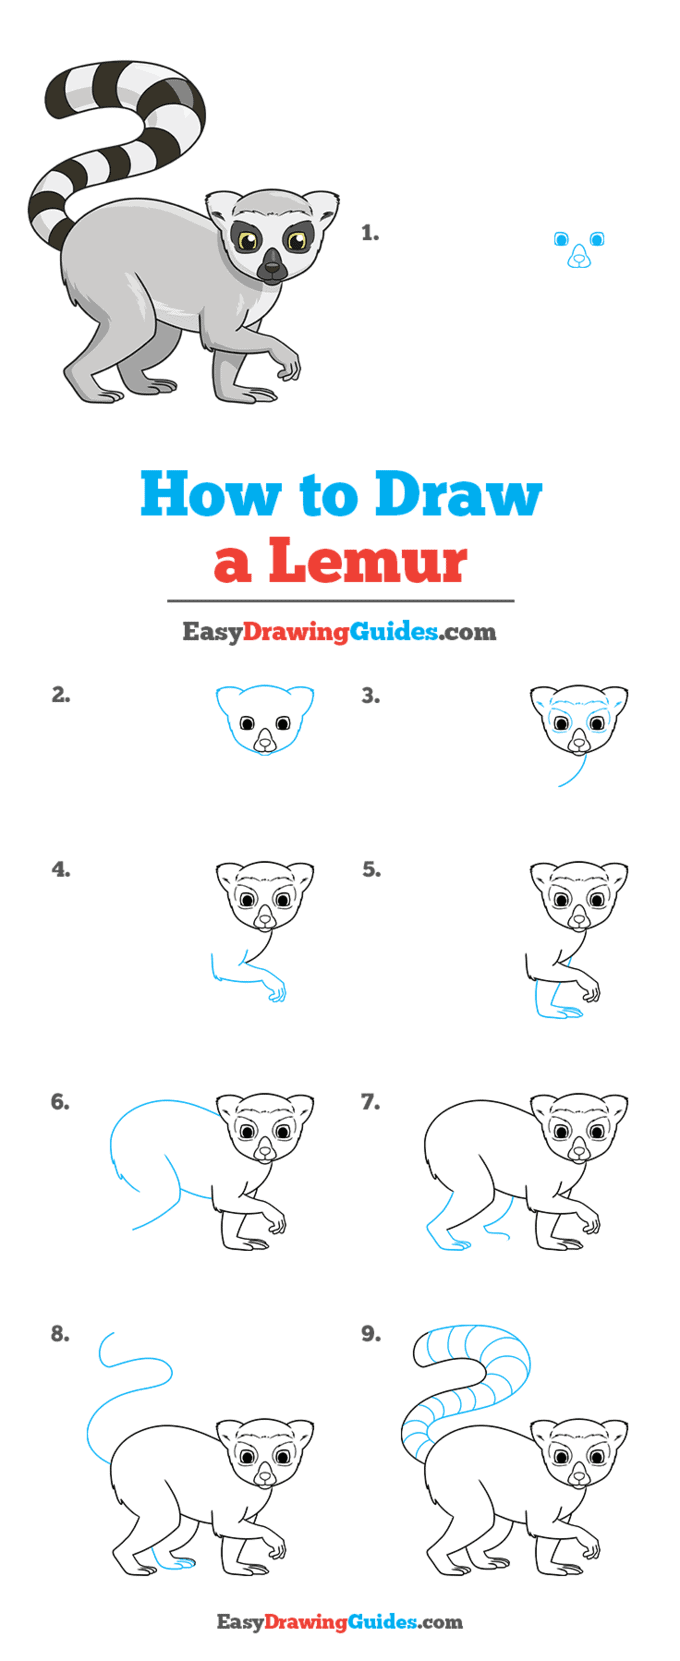 how to draw a lemur step by step tutorial image